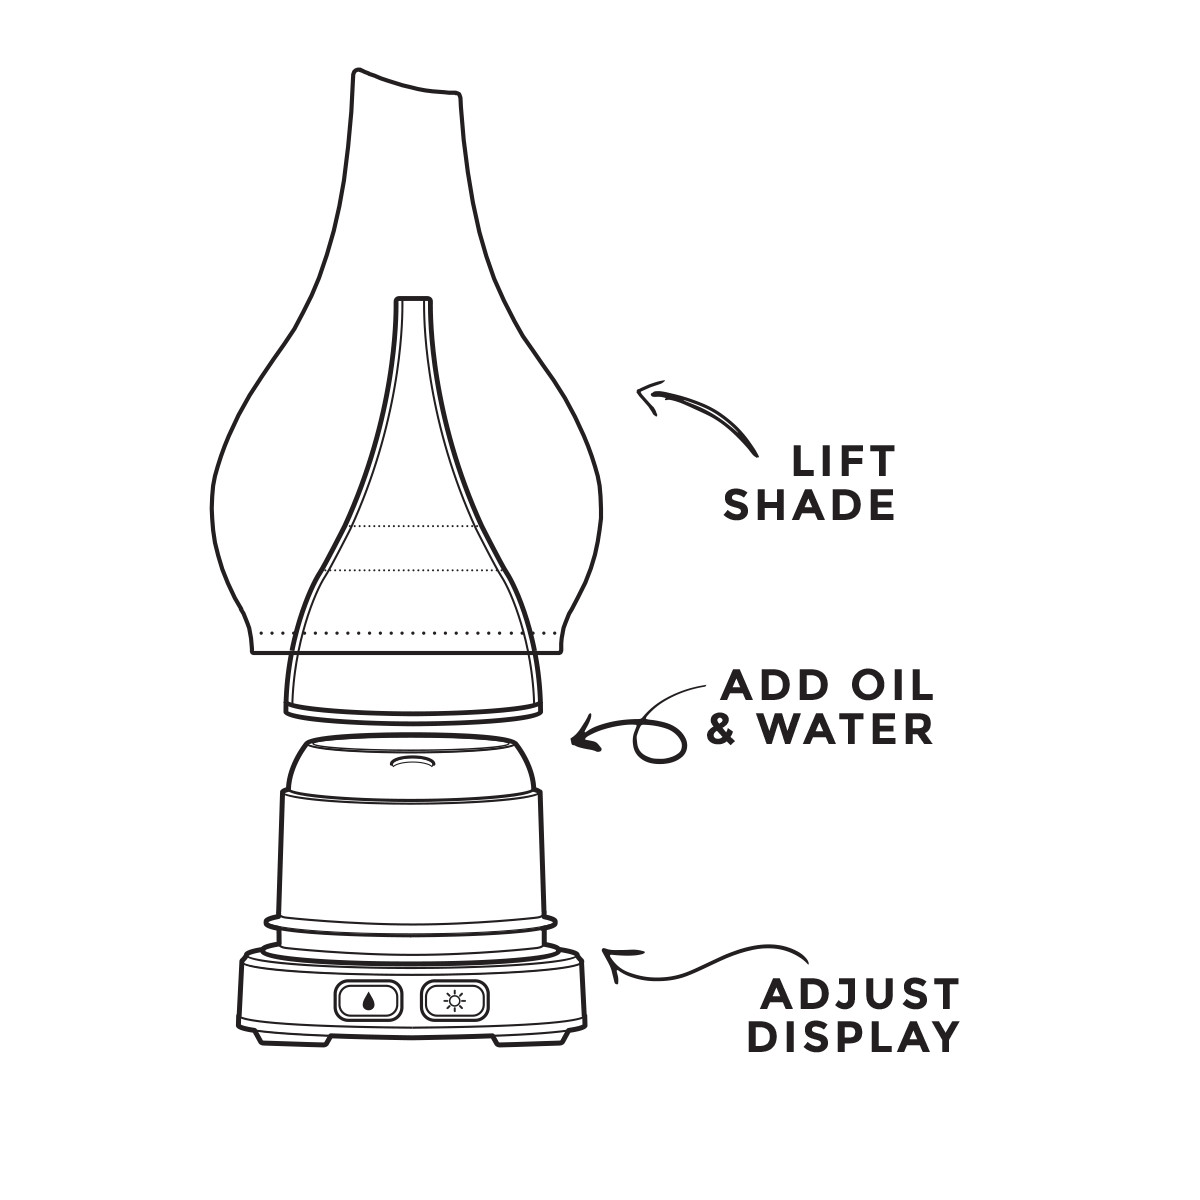 Scentsy Diffuser How to